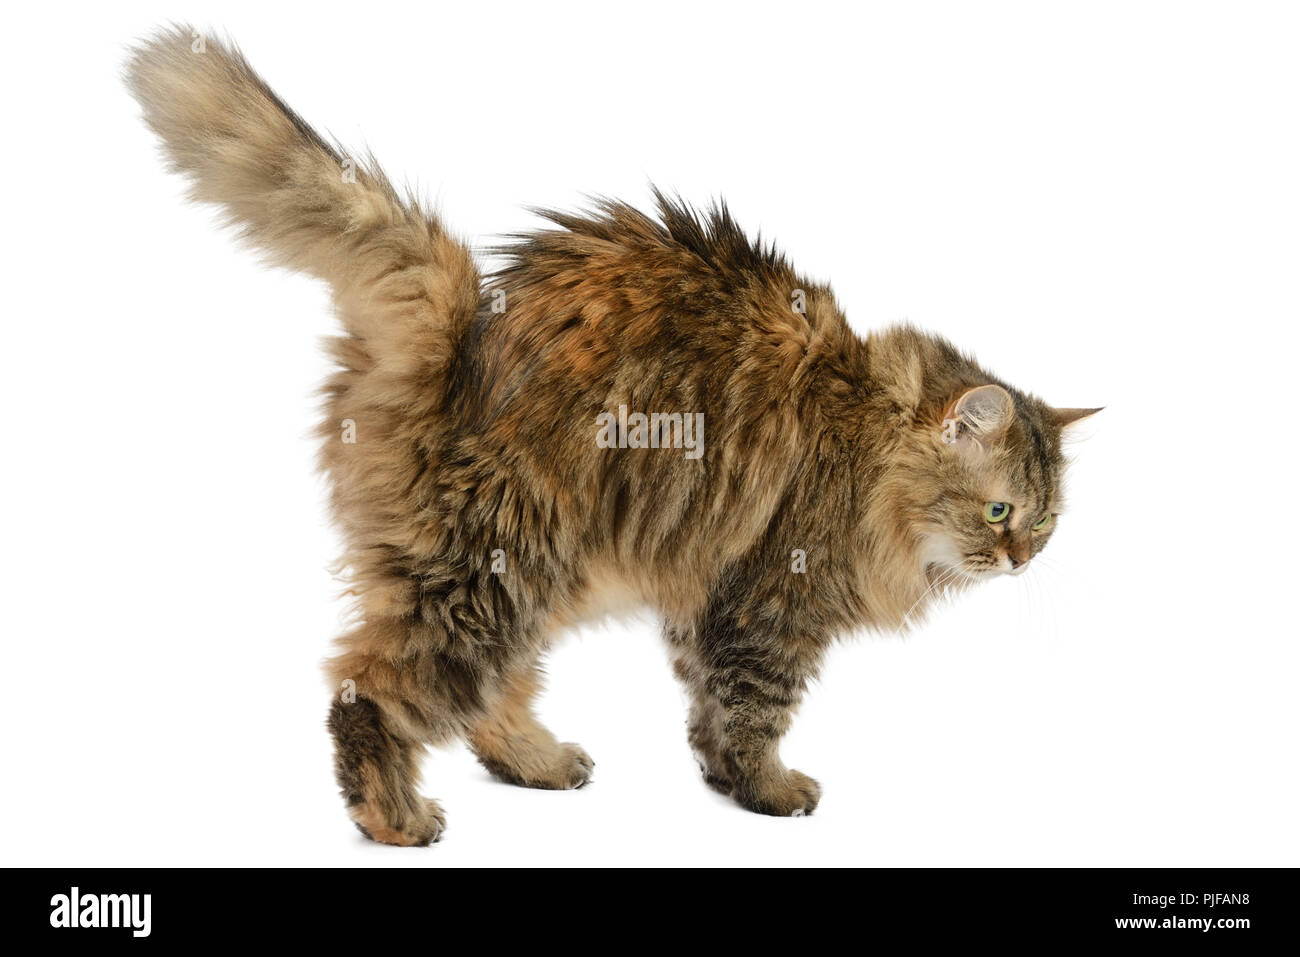 Fluffy angry cat isolated on white background. Side view. - Stock Image